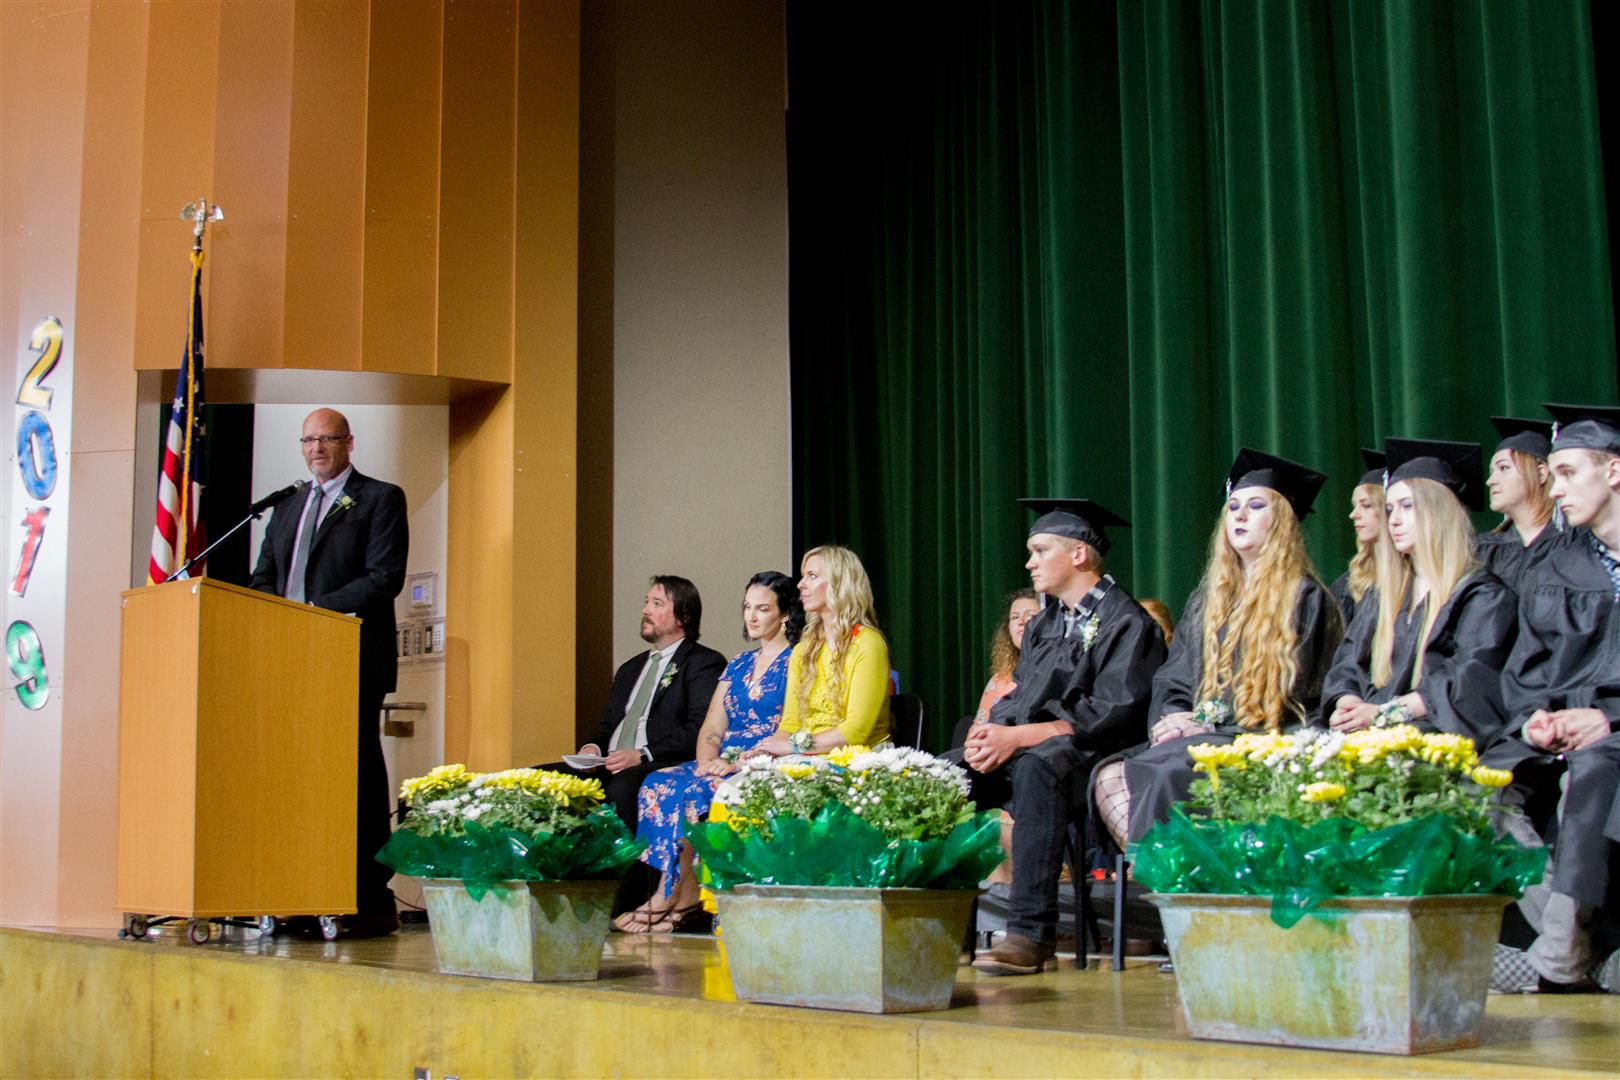 1560449992-team-high-class-of-2019-commencement-11__large_